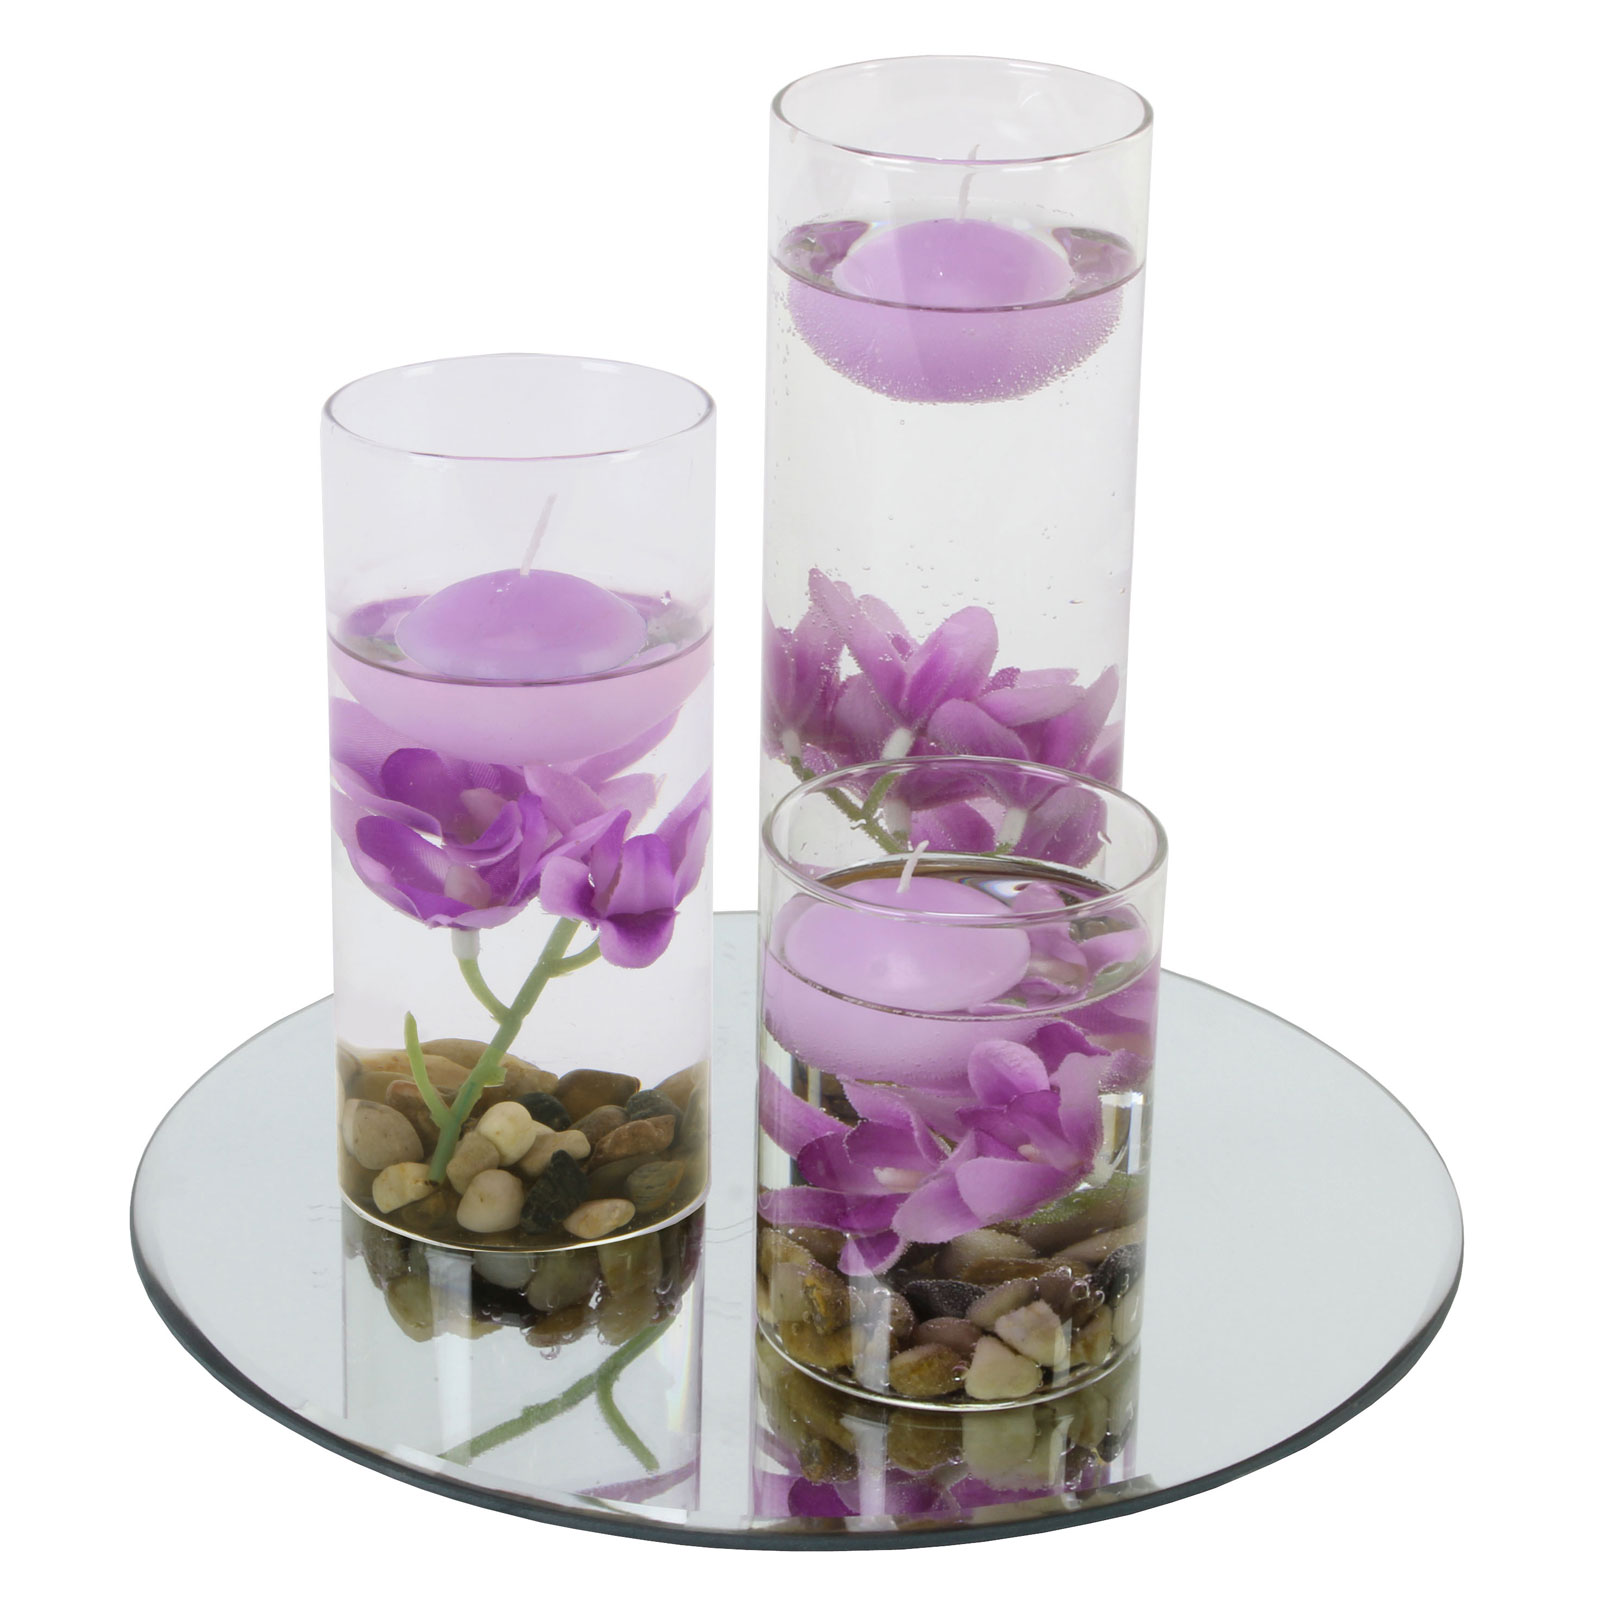 Floating Candles And Flowers For Wedding Centerpieces: Glass Mirror Plate Floating Candles Vase Full Set Flower